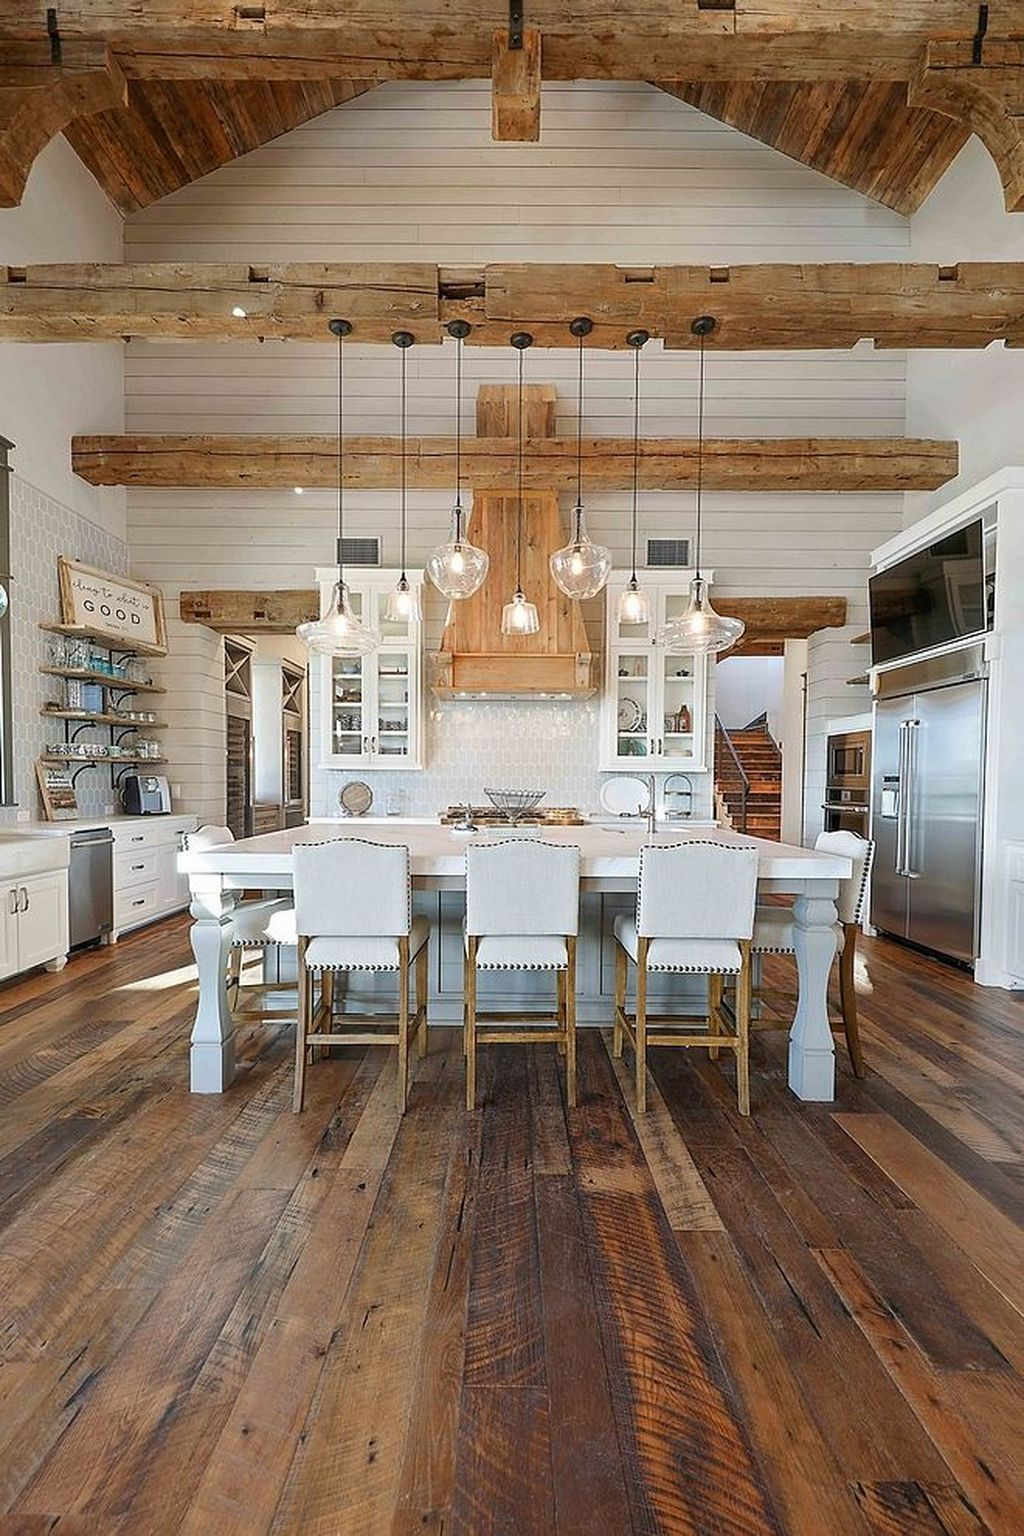 20+ Totally Inspiring Kitchen Design Ideas is part of Totally Inspiring Kitchen Design Ideas Trendhmdcr Com - Through the process of building a small country farm house at our families farm I've found myself looking for good […]